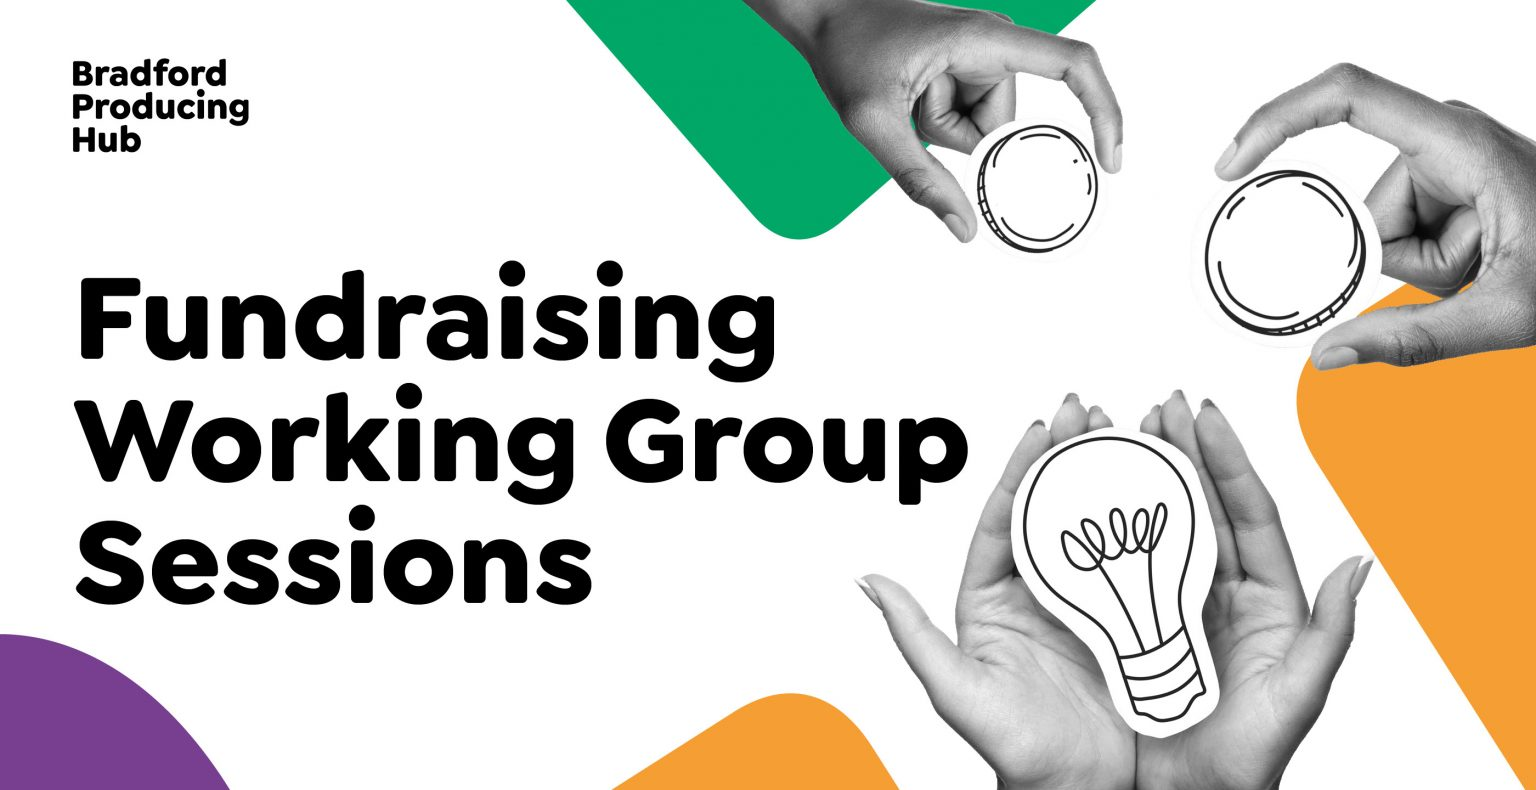 Fundraising Working Group Sessions